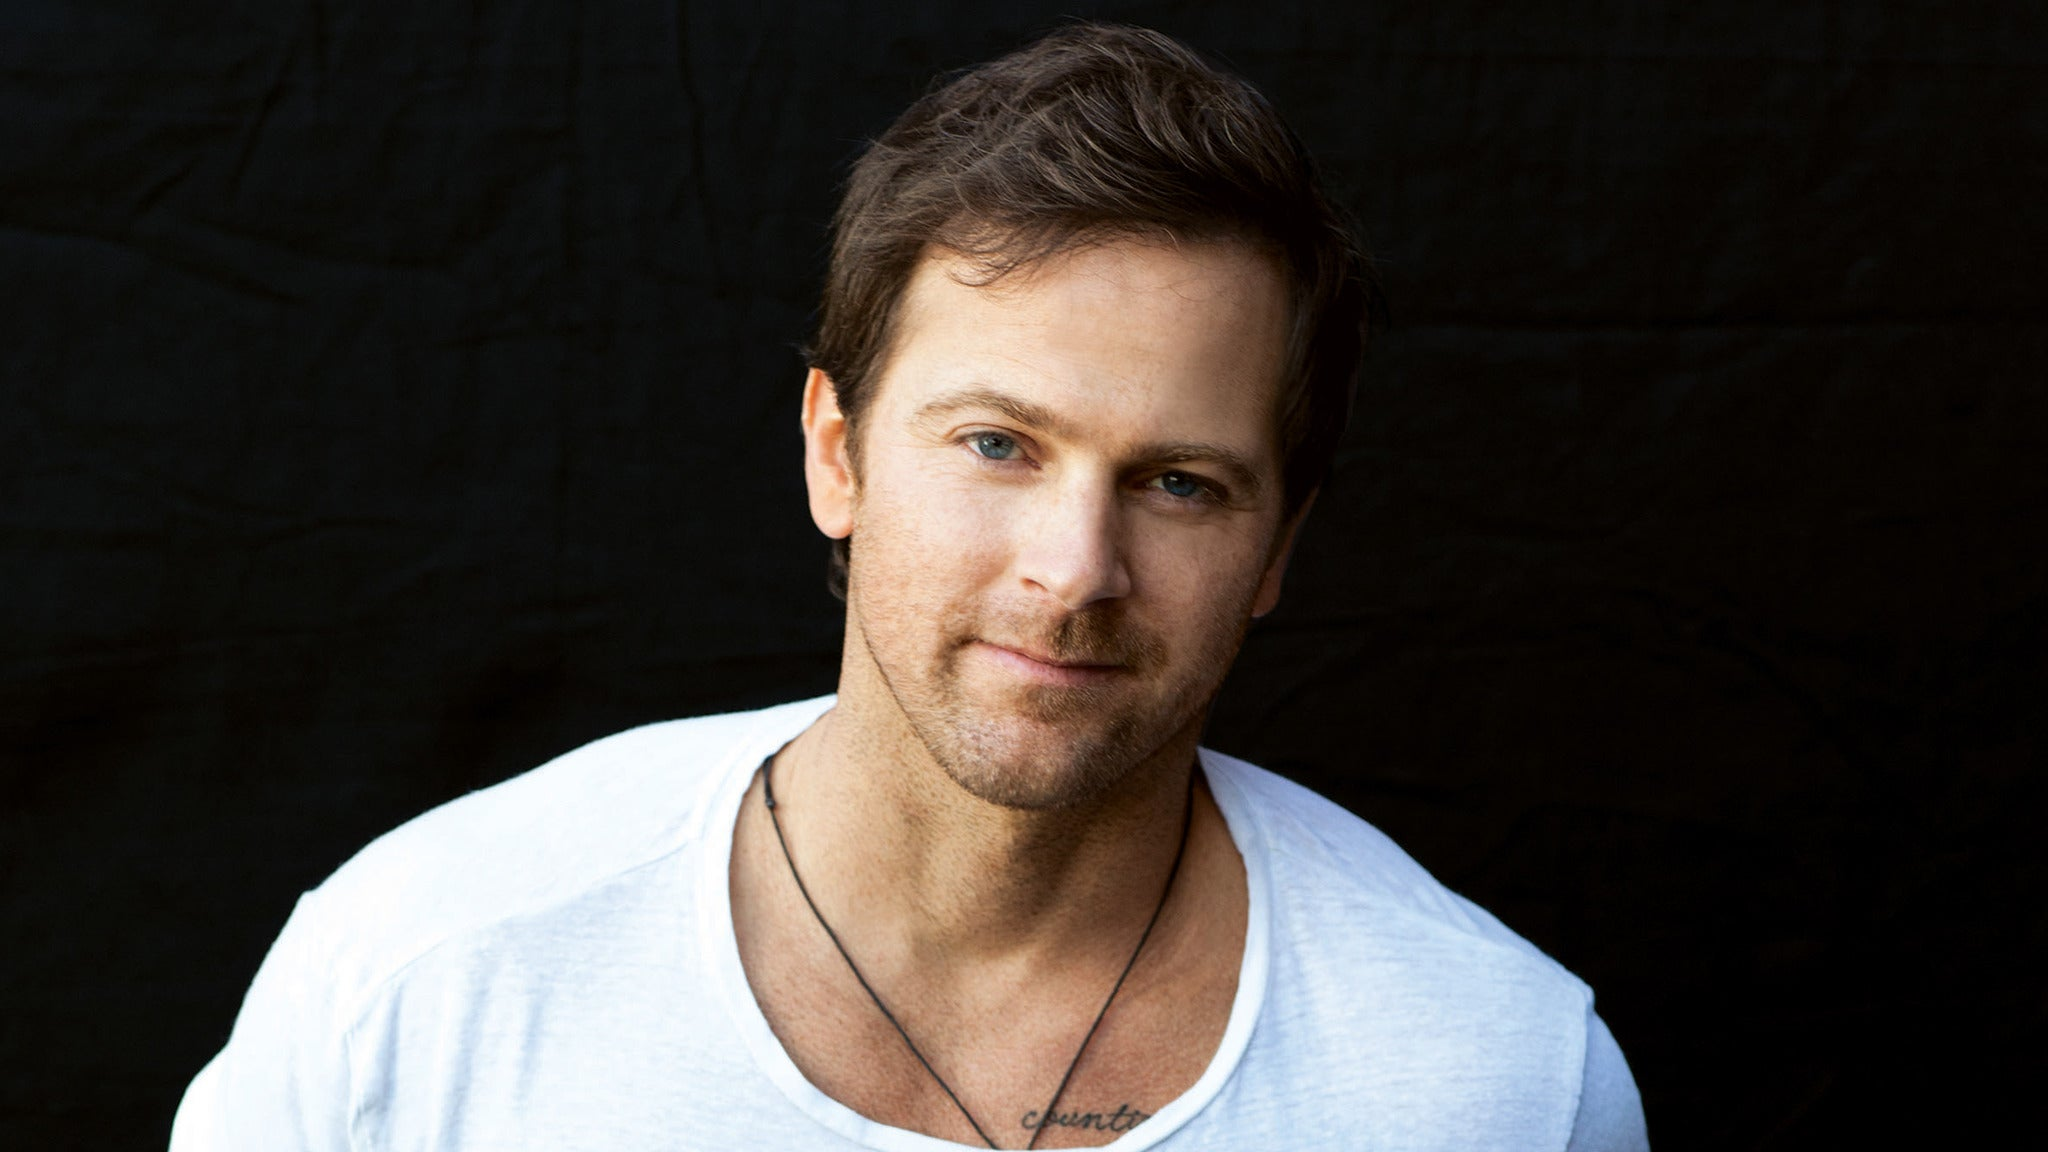 Kip Moore with special guest Jon Pardi at The Tabernacle - Atlanta, GA 30303